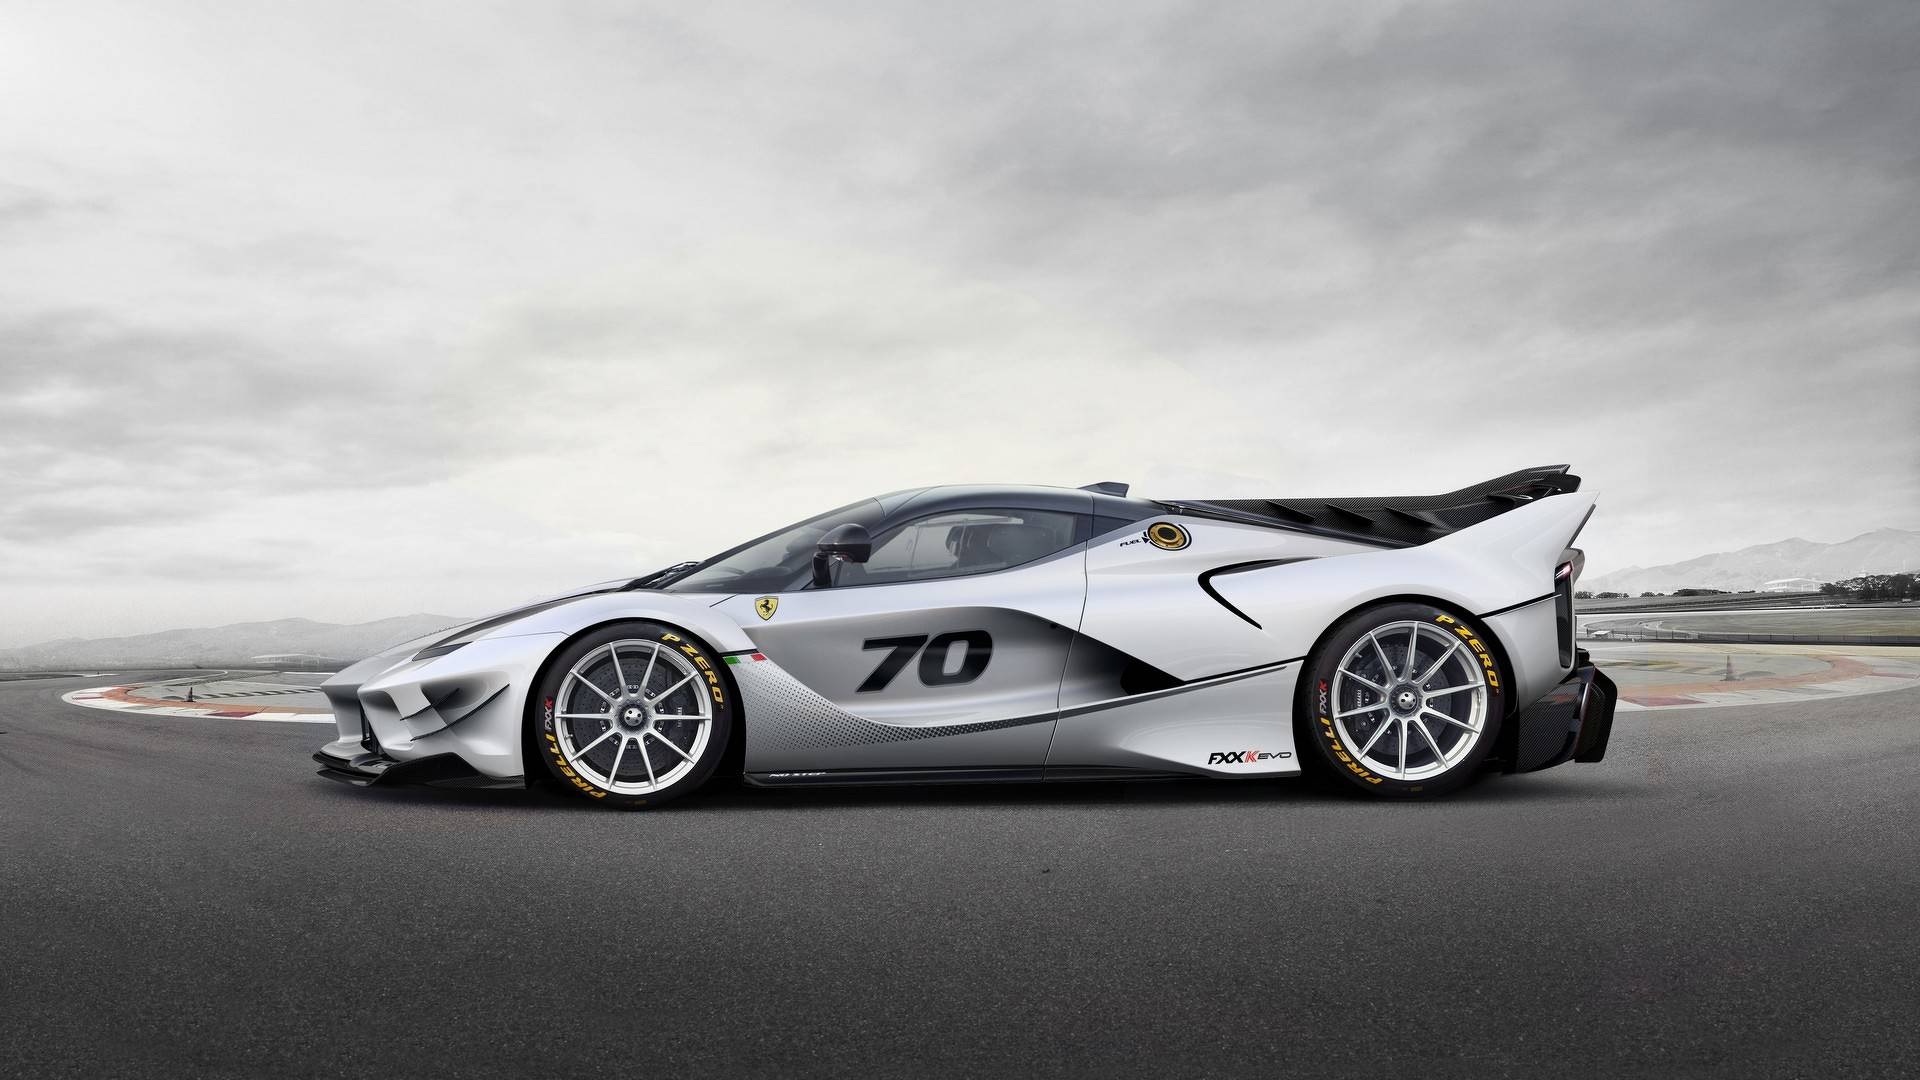 Ferrari FXX,K Evo Launched, Available As Upgrade Package And